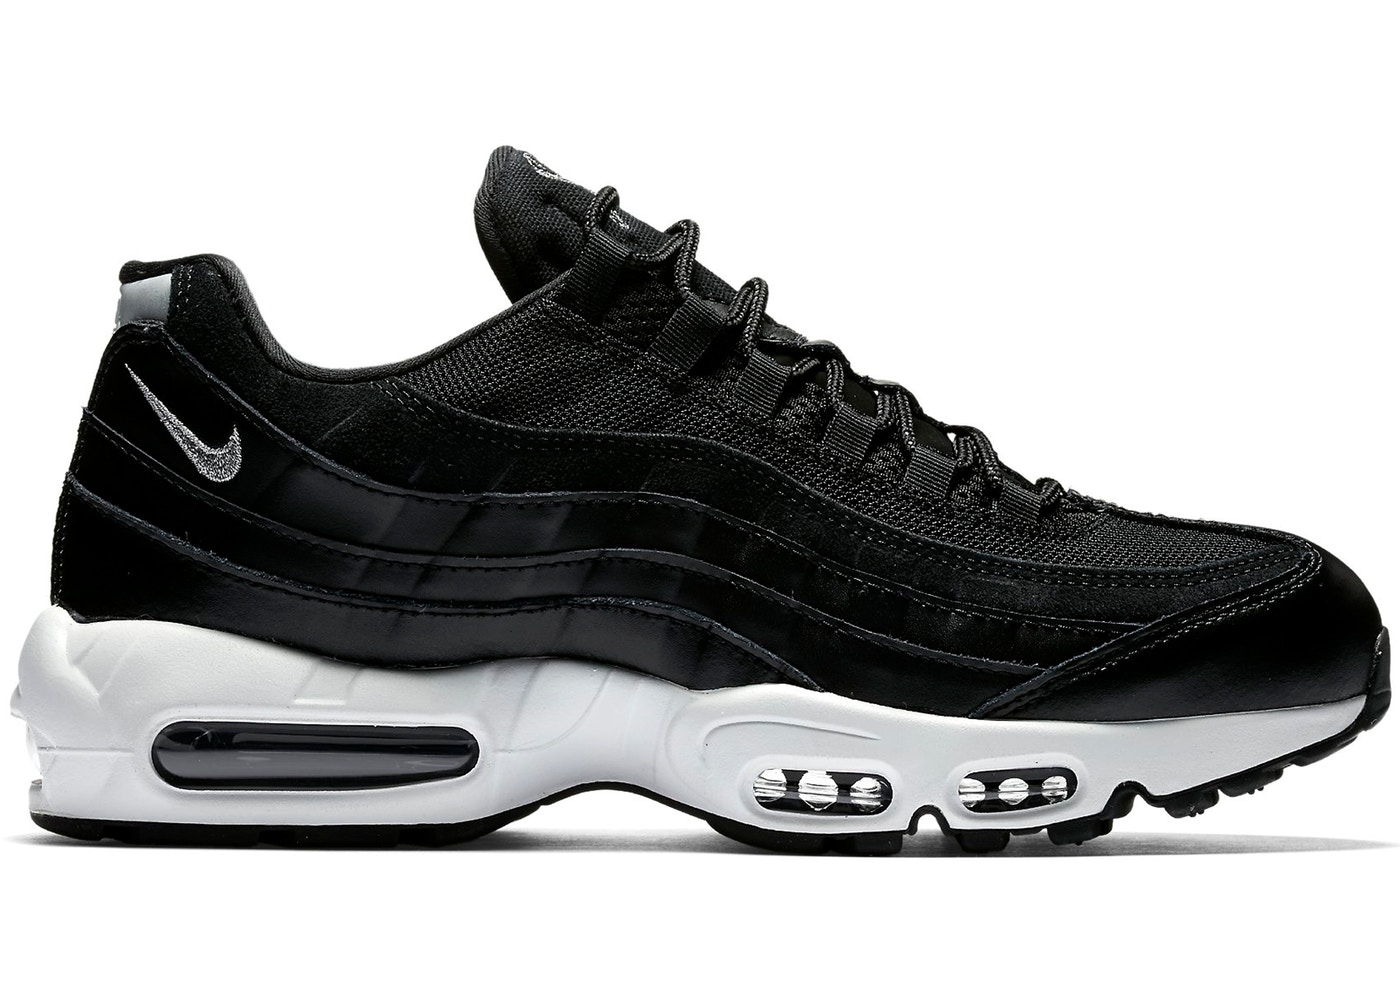 Air Max 95 Rebel Skulls